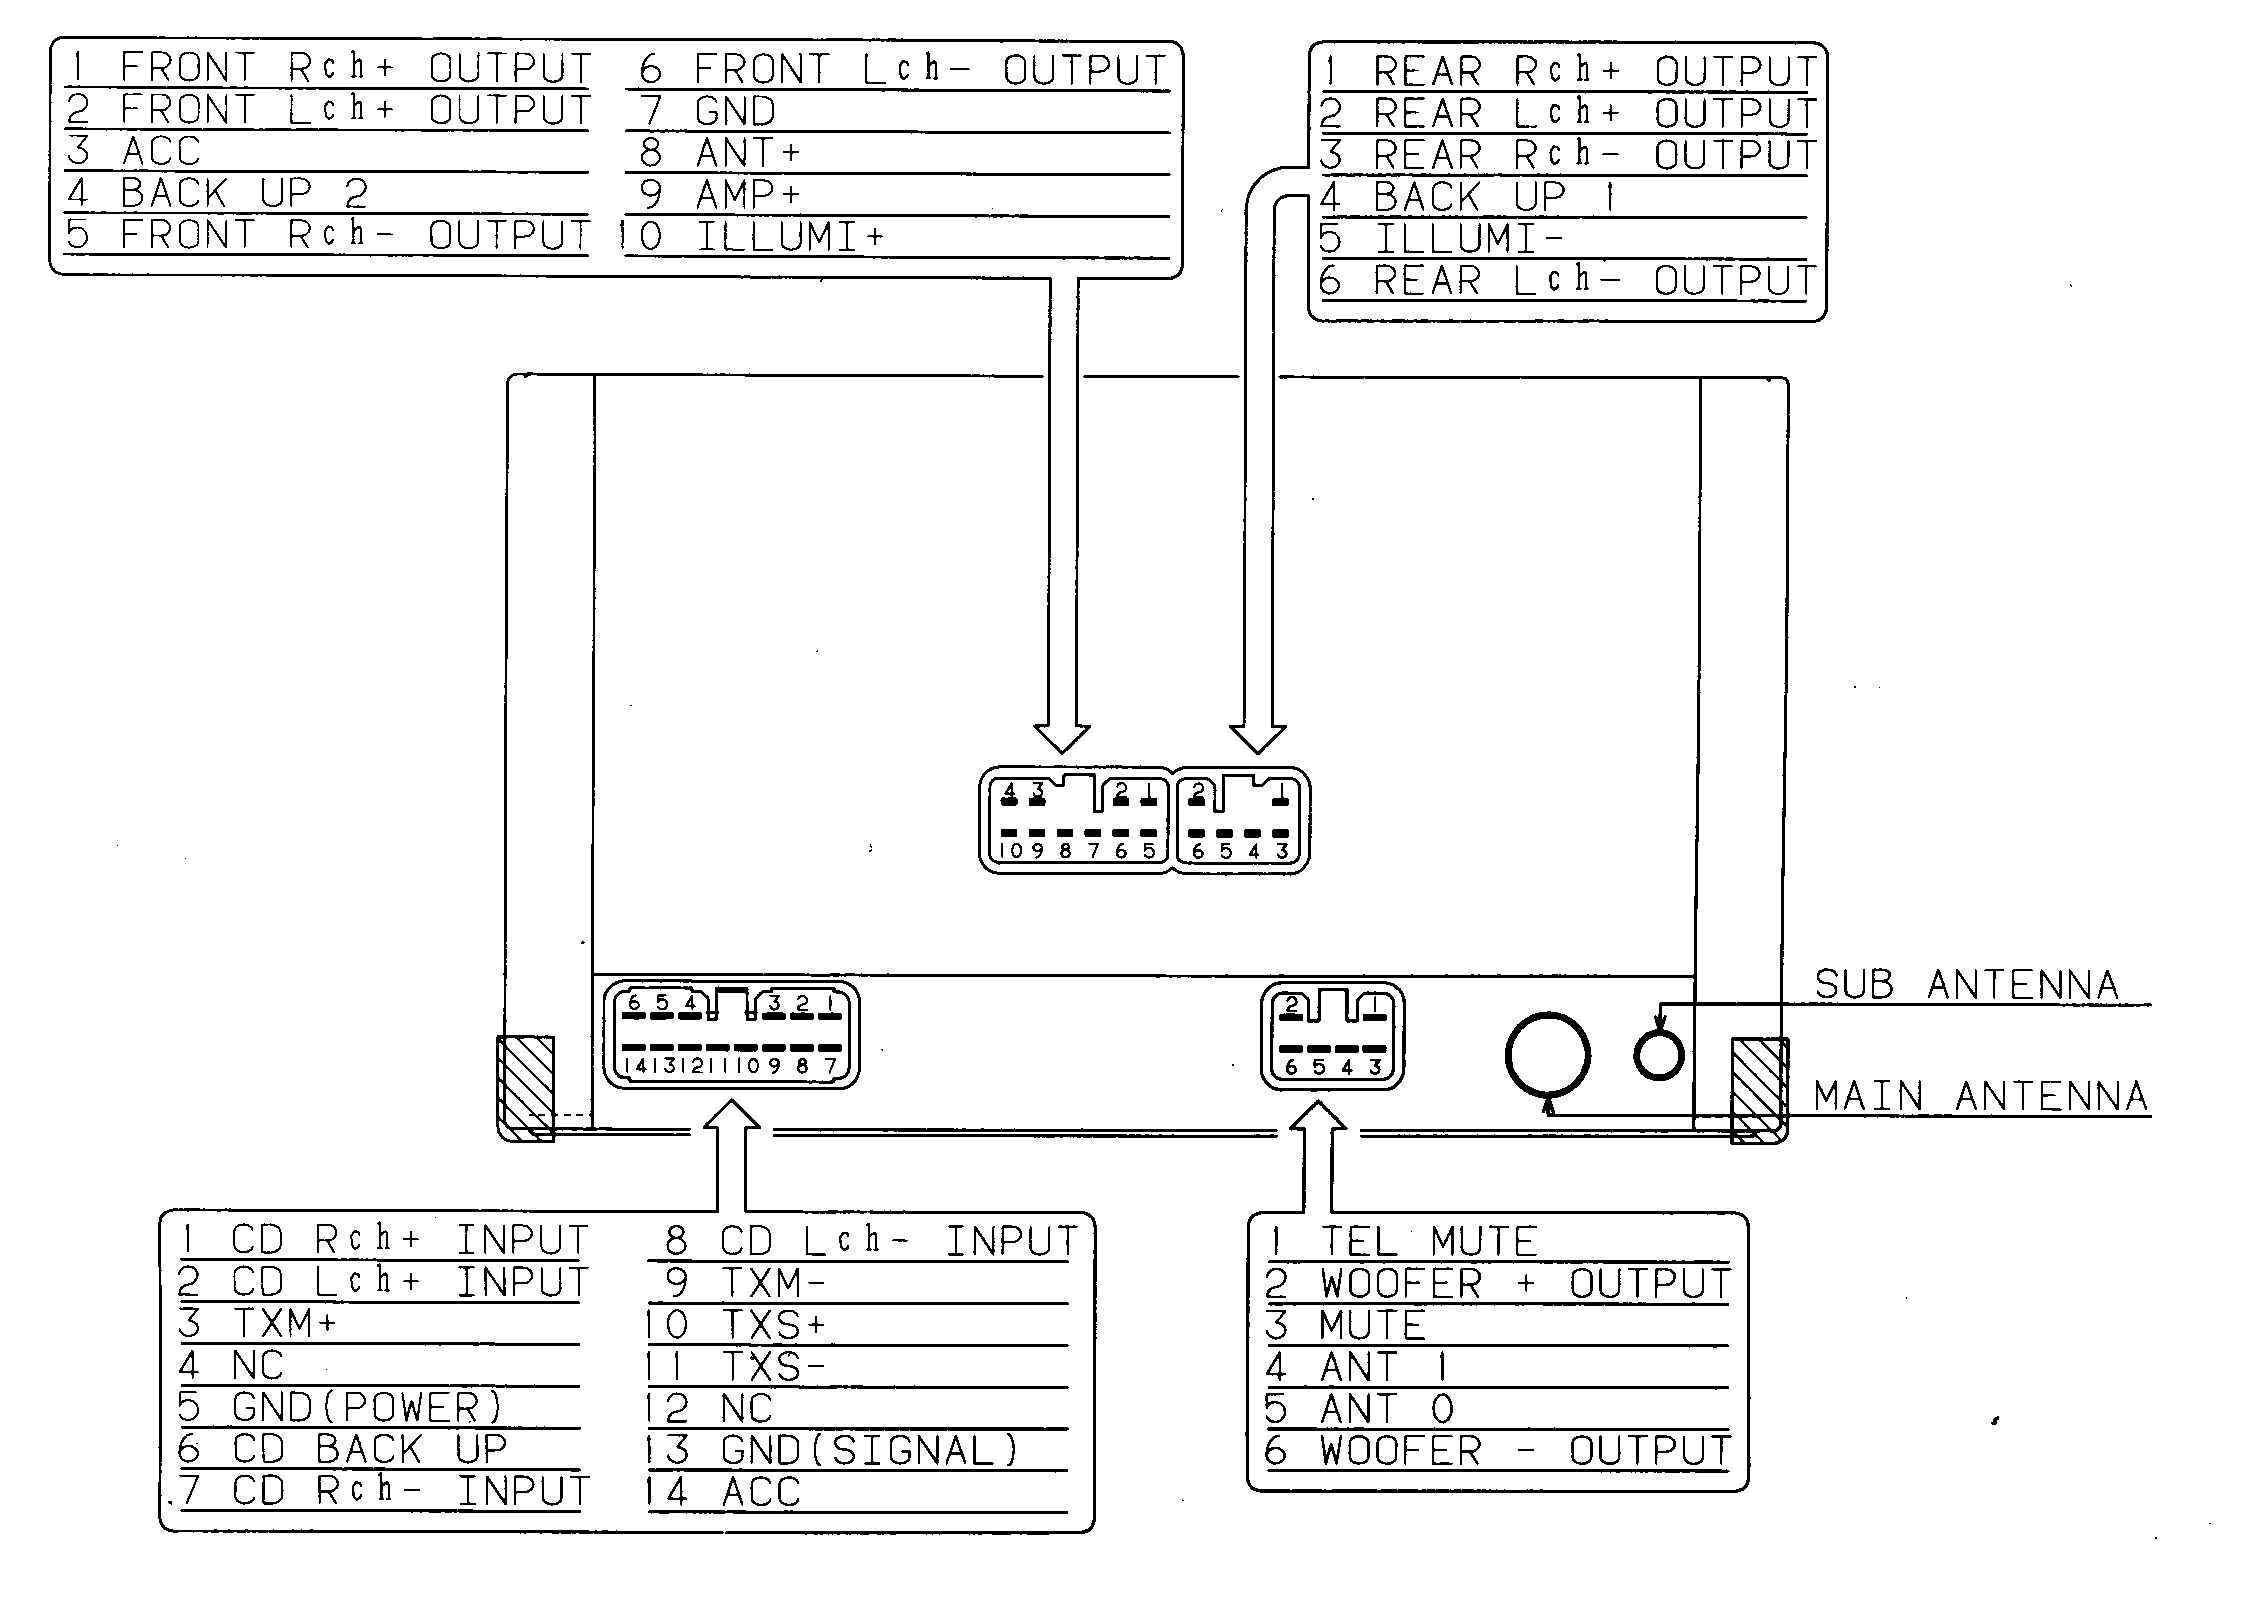 Lexus car stereo wiring diagram harness pinout connector wire 1996 jeep grand cherokee car stereo radio wiring diagram wiring 2002 jeep cherokee radio wiring diagram at alyssarenee.co